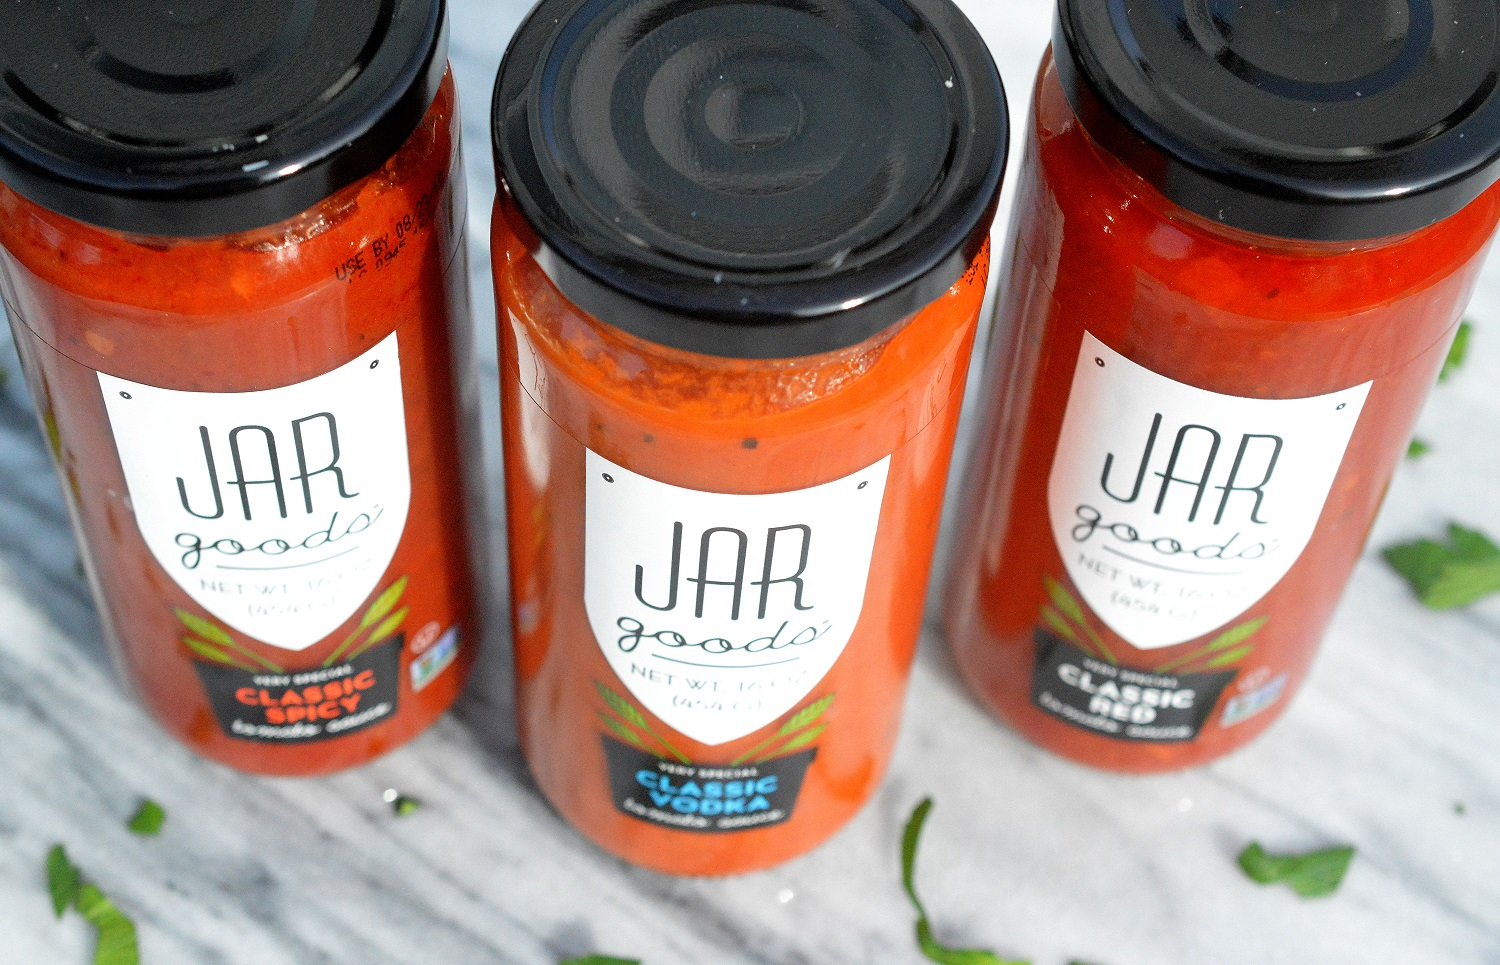 Jar Goods Specialty Pasta Sauces